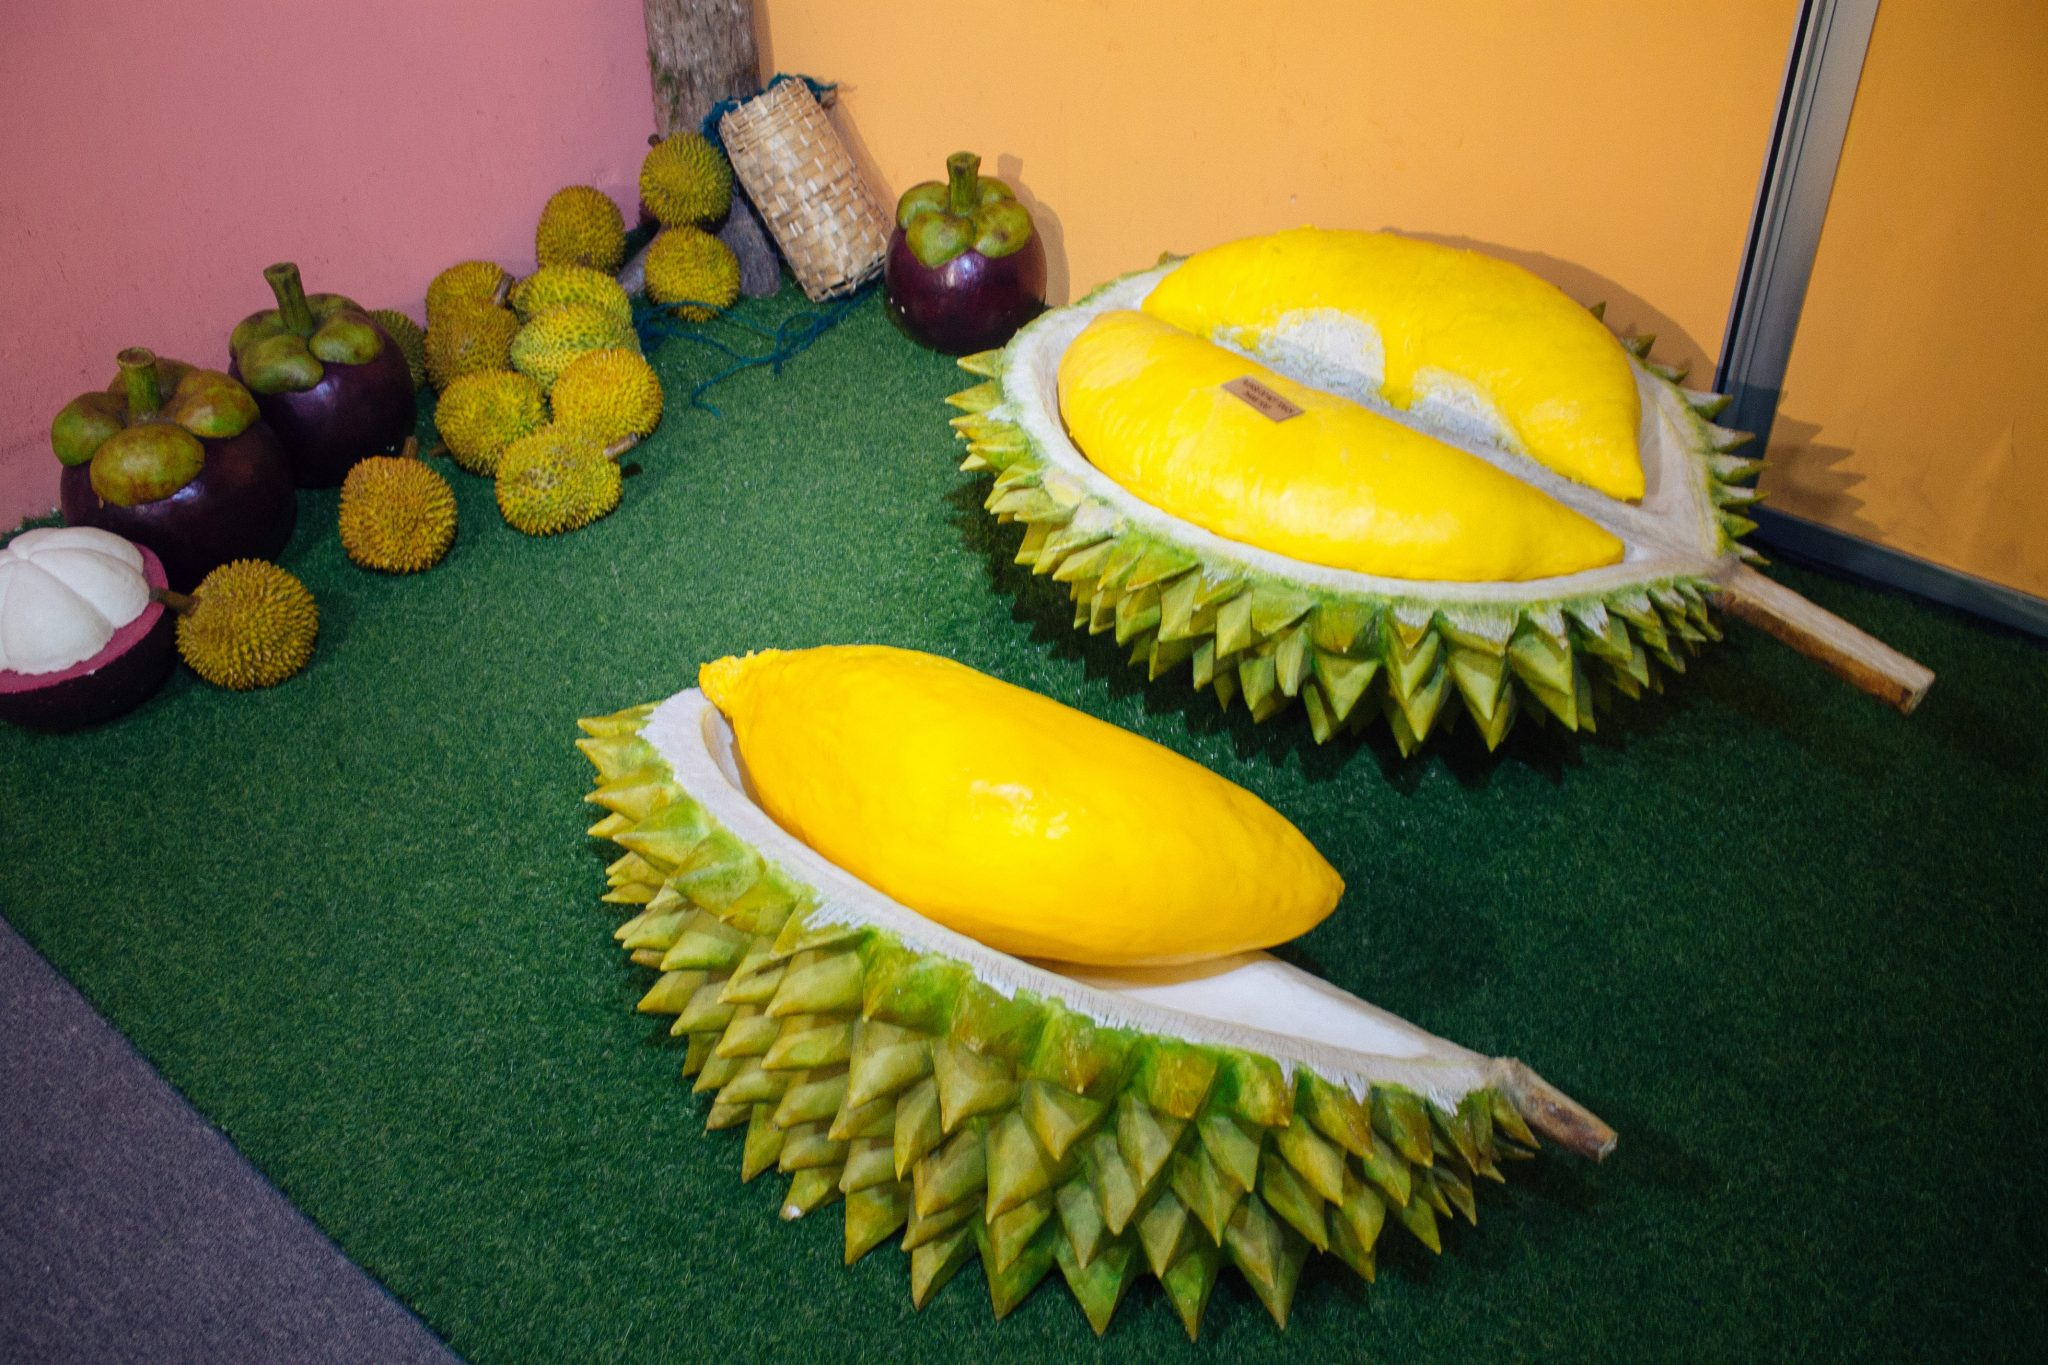 Durian at the Wonderfood Museum in George Town, Penang, Malaysia | Asia Travel